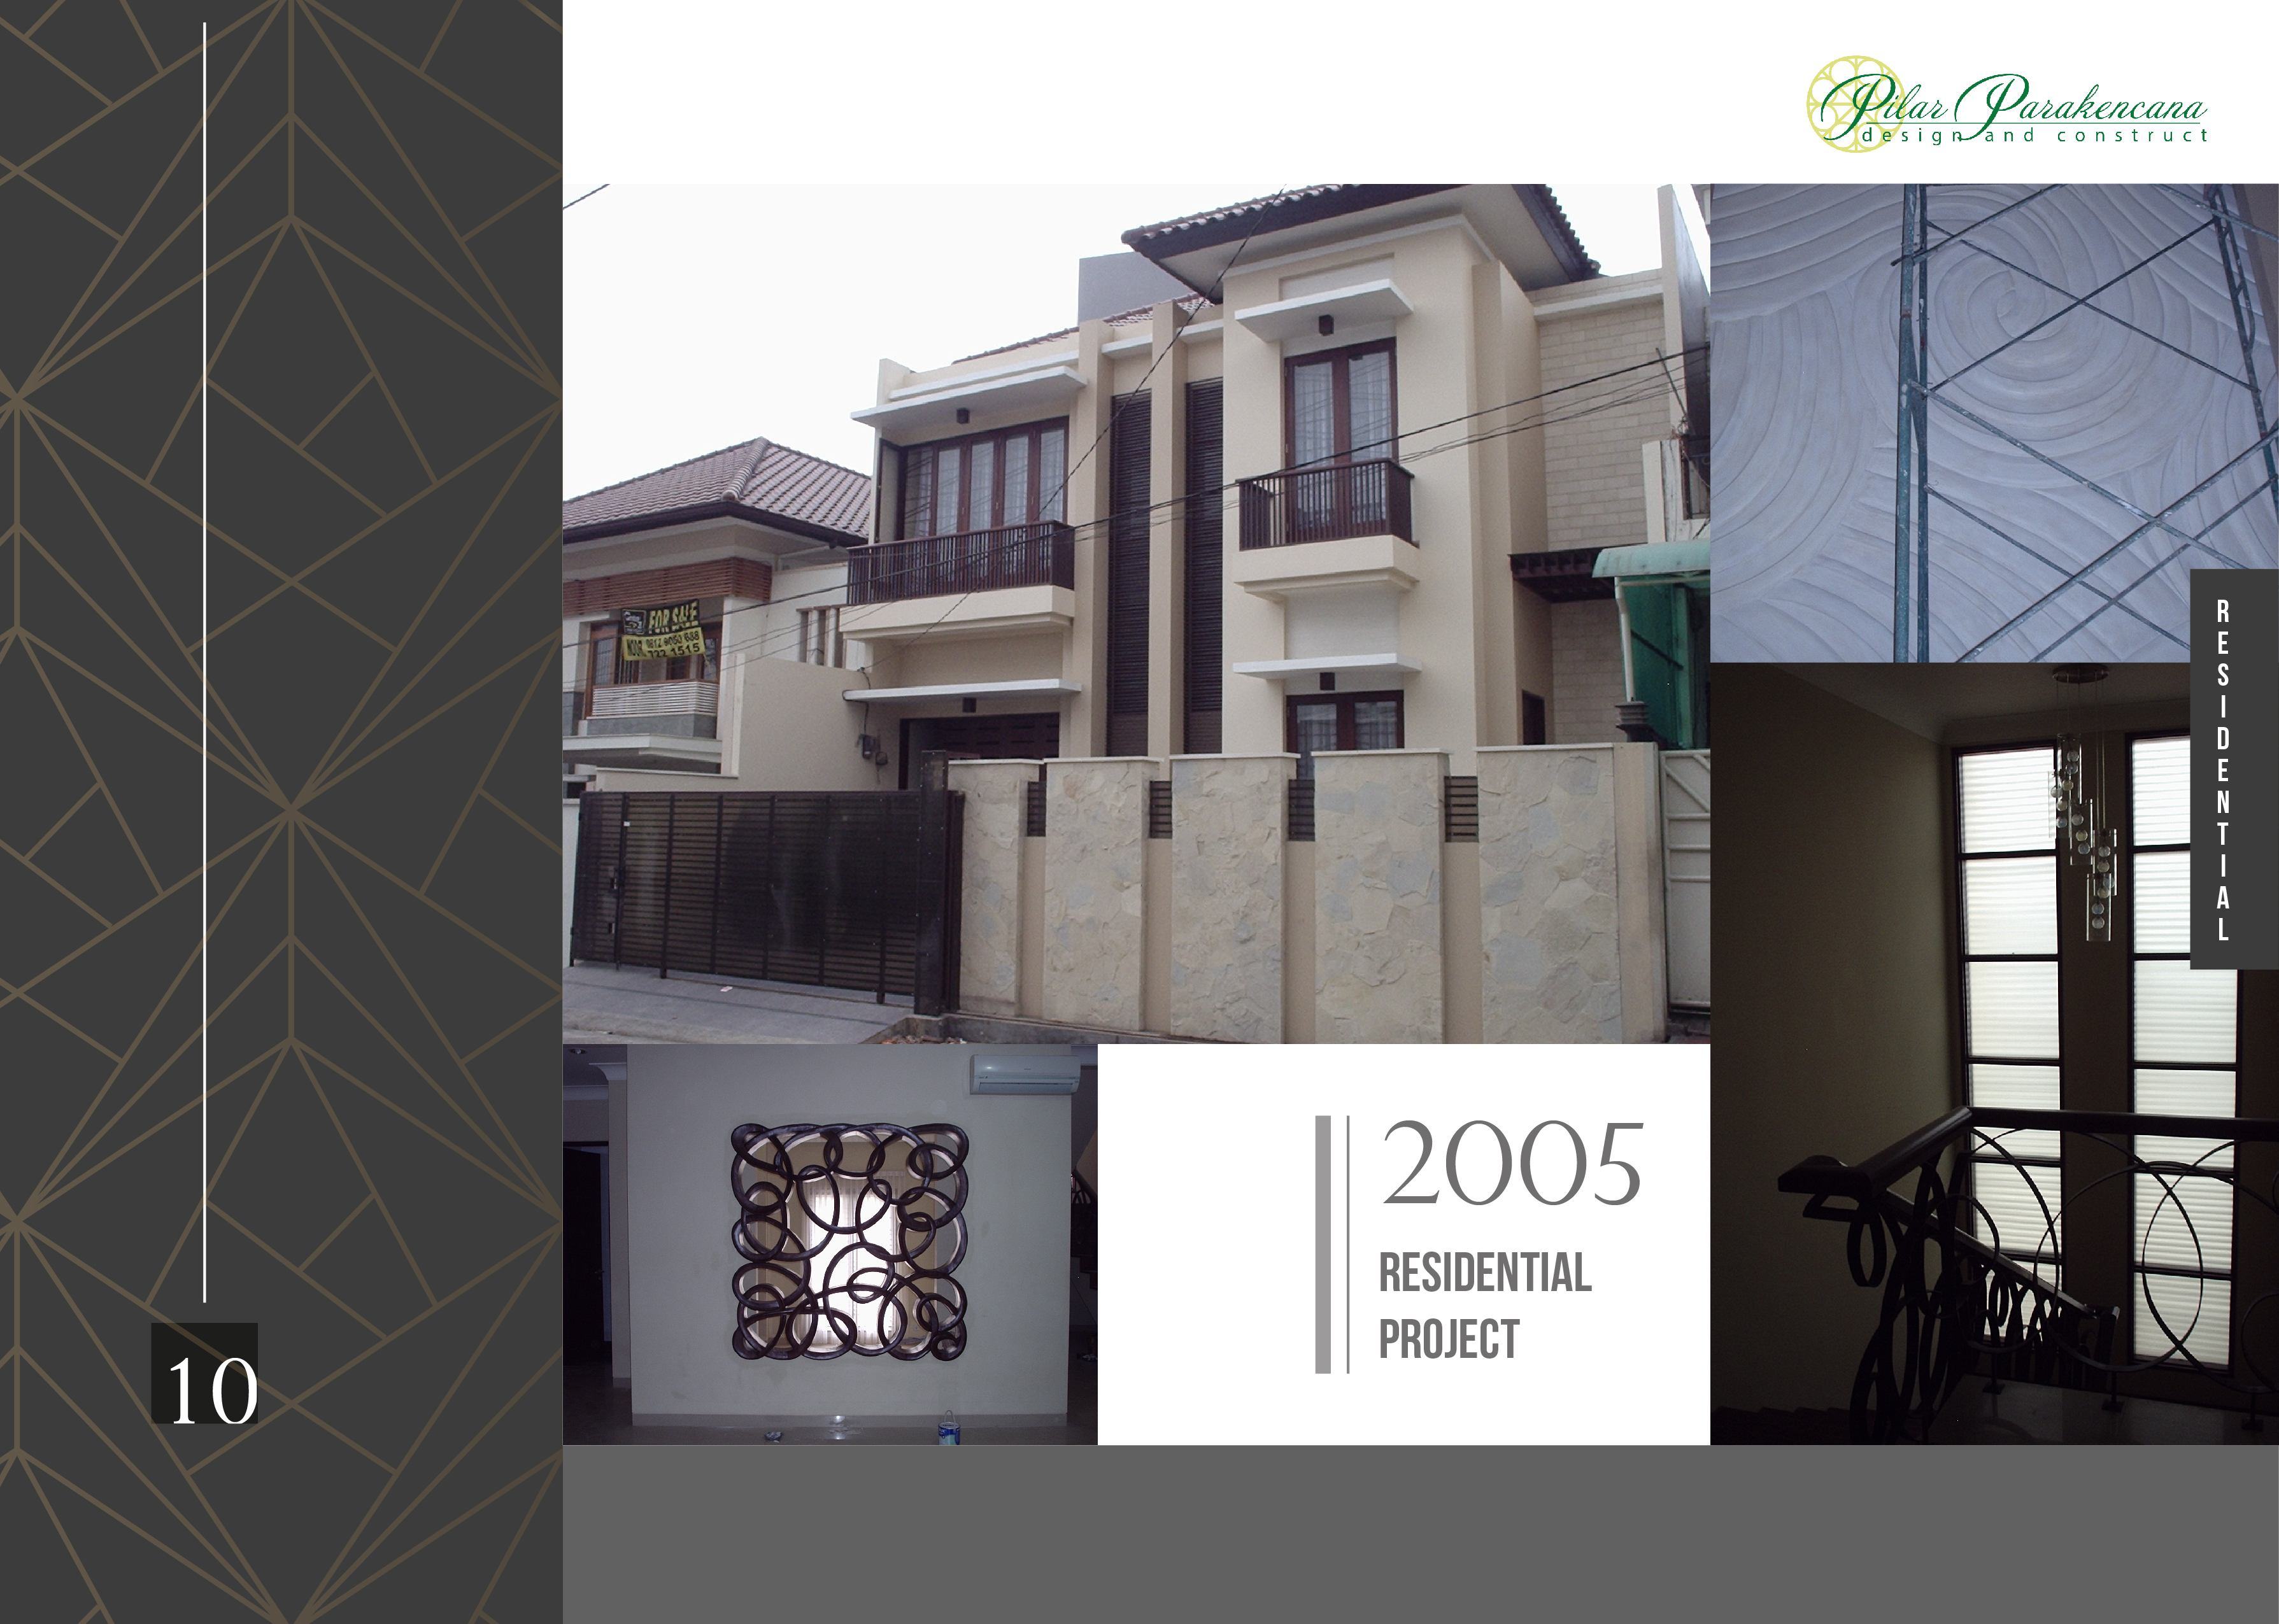 Residential Project - 2005